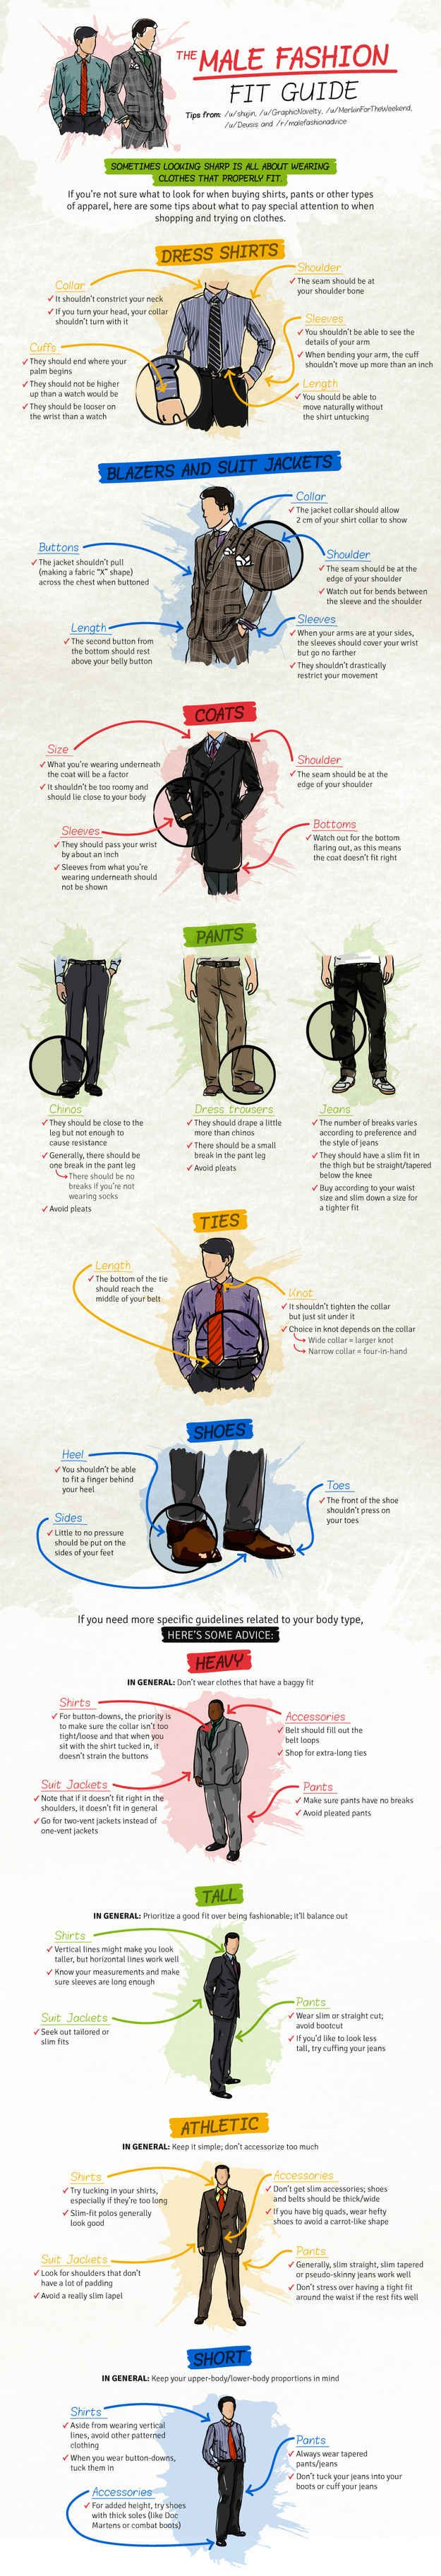 Everything You Need To Know About Men's Fashion In One Infographic